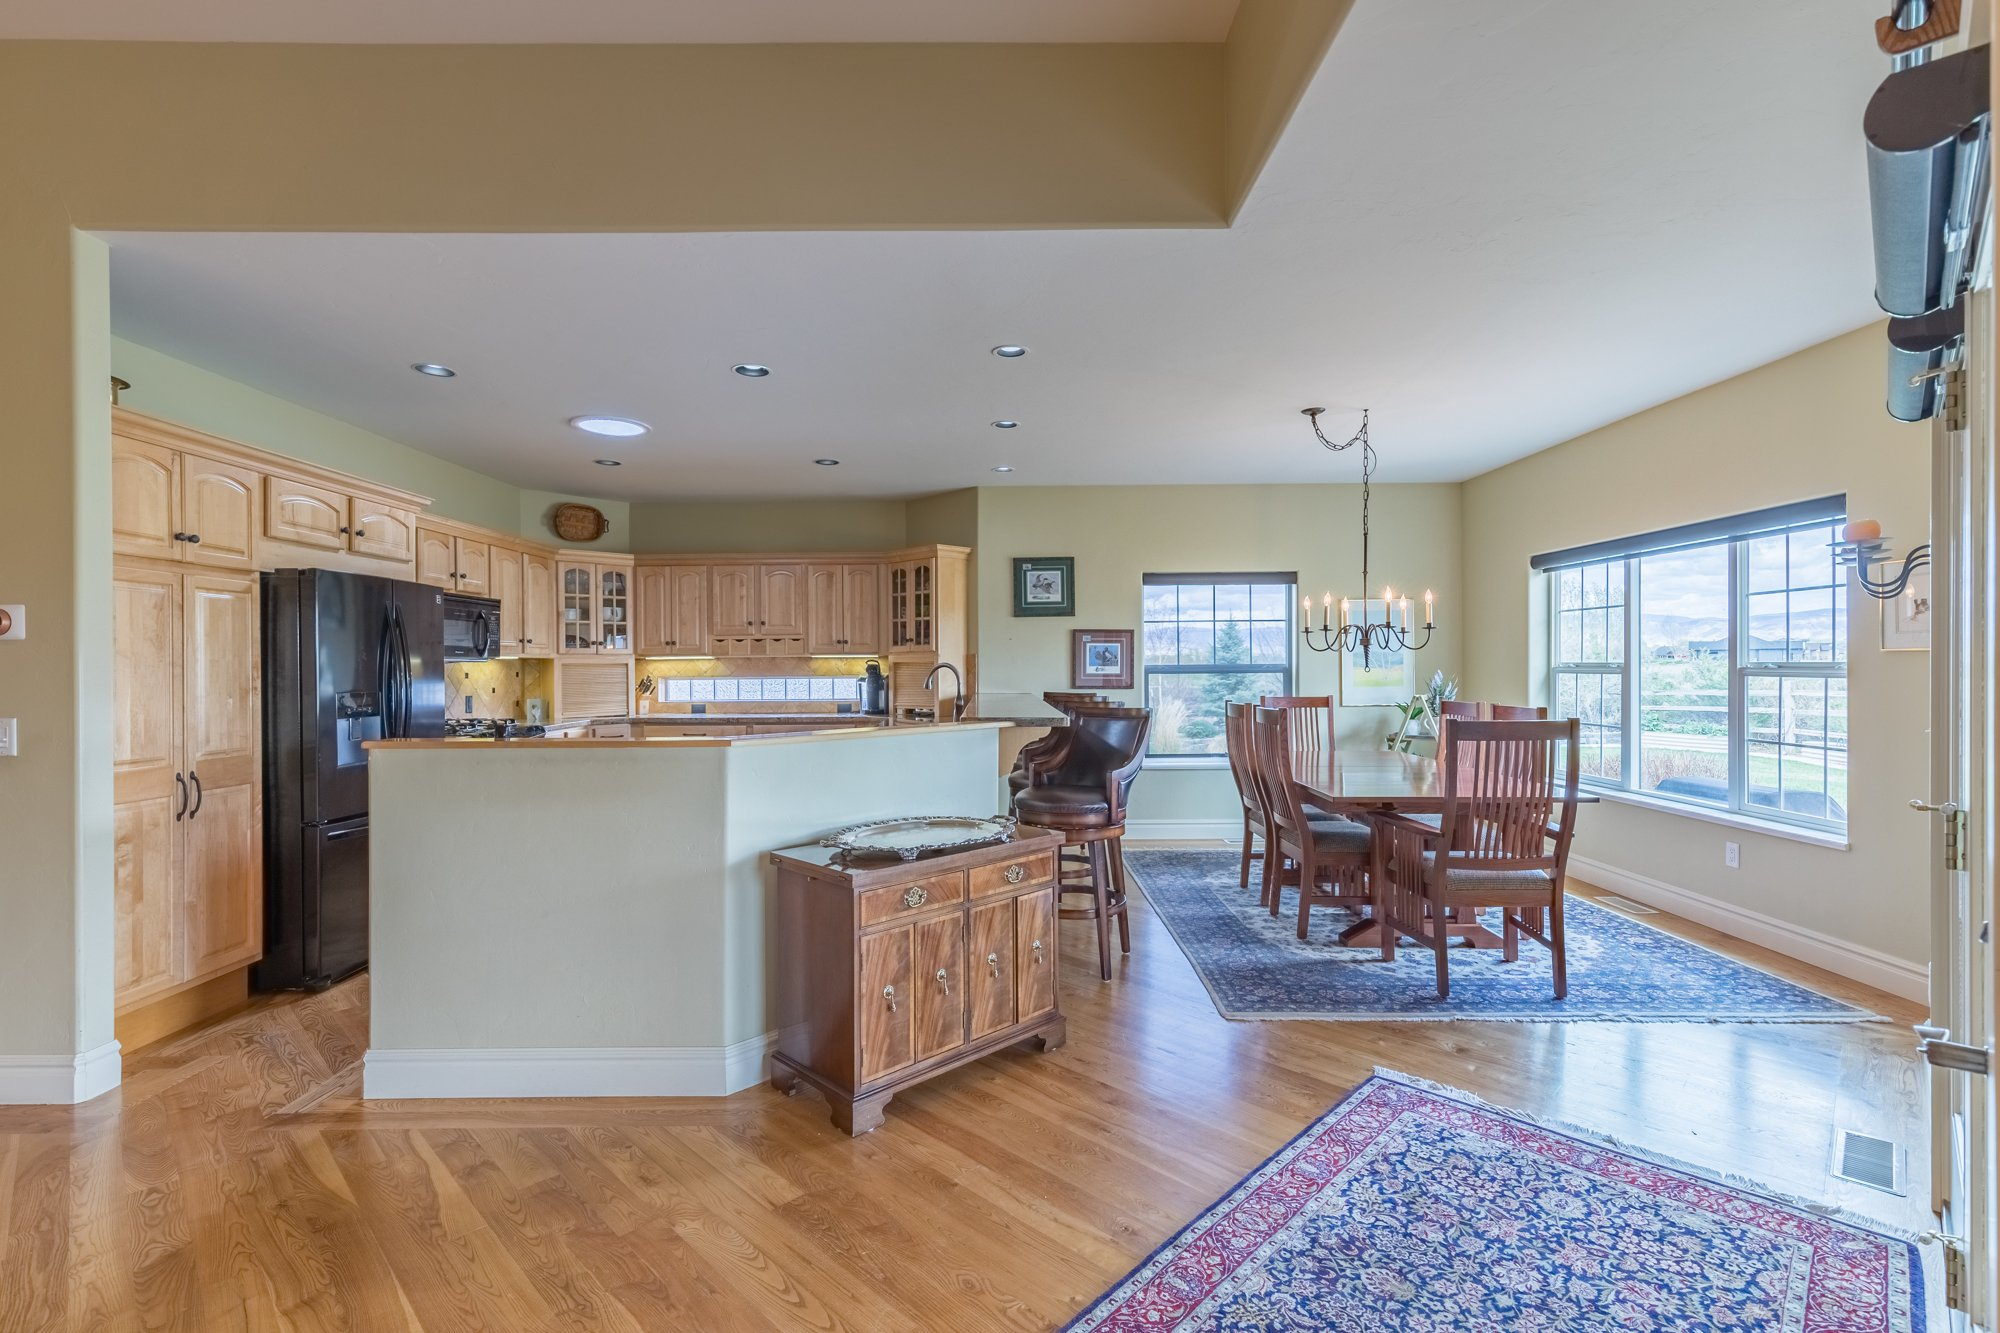 Kitchen and Dining Room - 640 Badger Court Montrose, CO 81403 - Atha Team Real Estate Agents